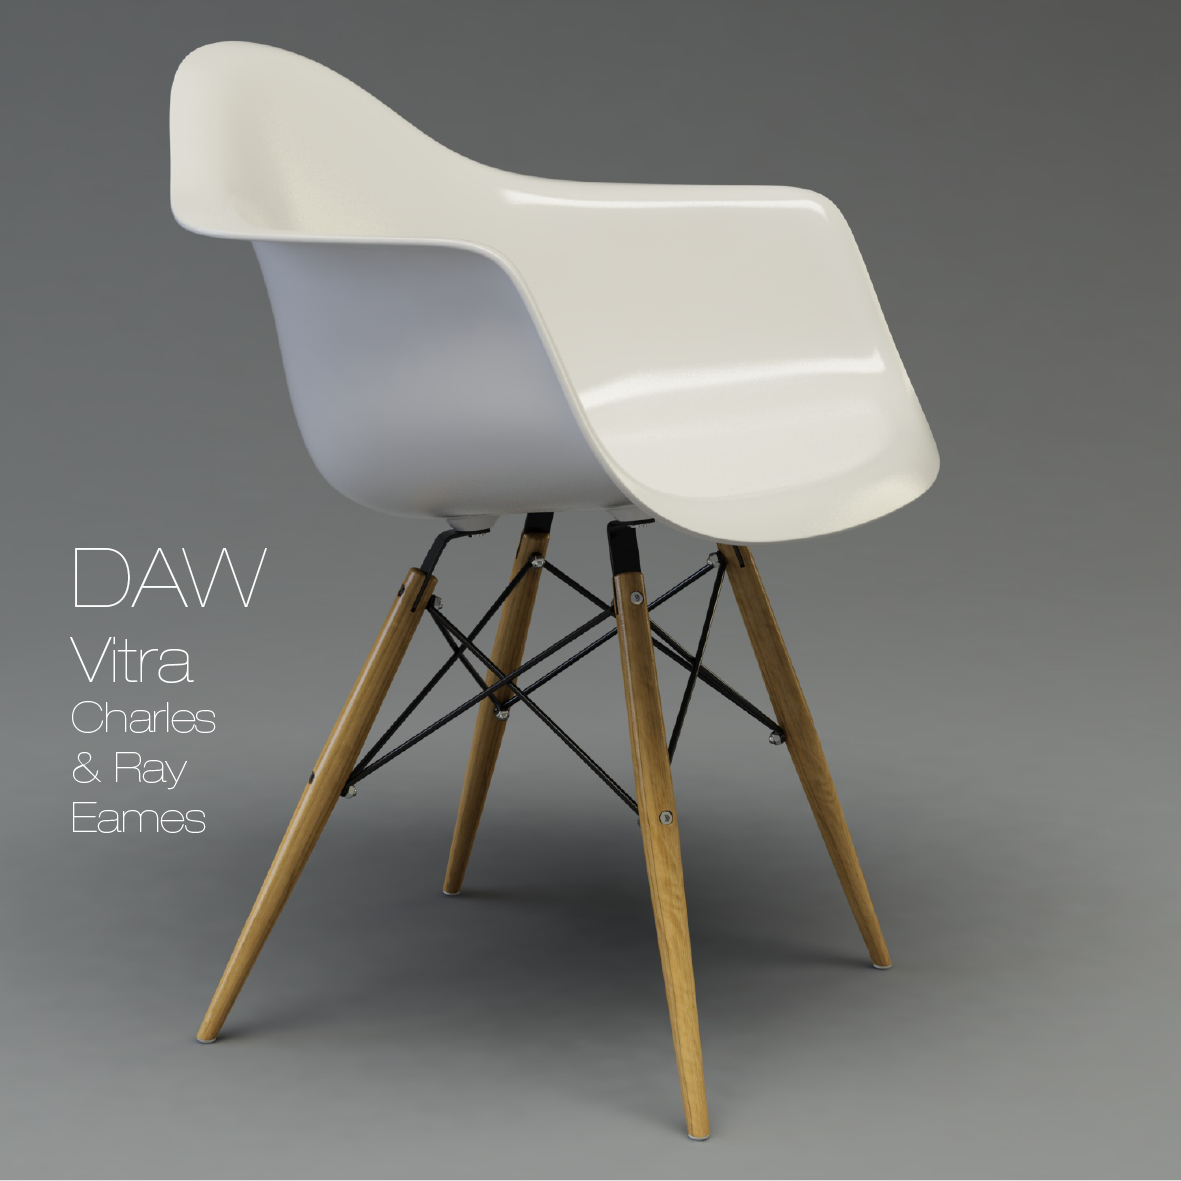 Gentil DAW Chair By POLYSENSE Polygons That Make Sense